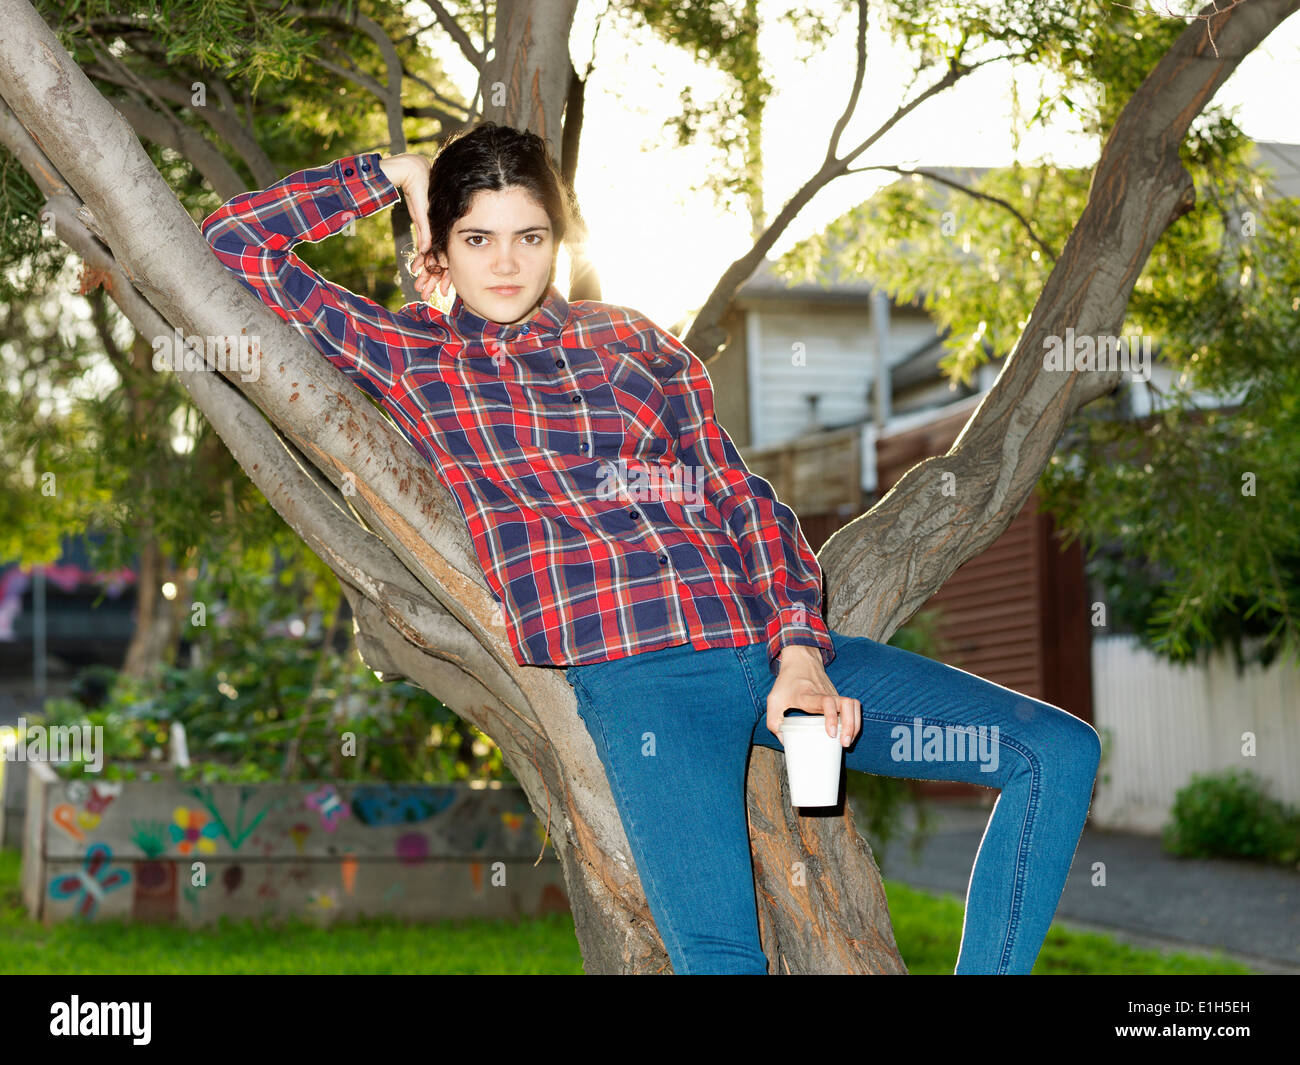 Portrait of confident young woman reclining against tree - Stock Image